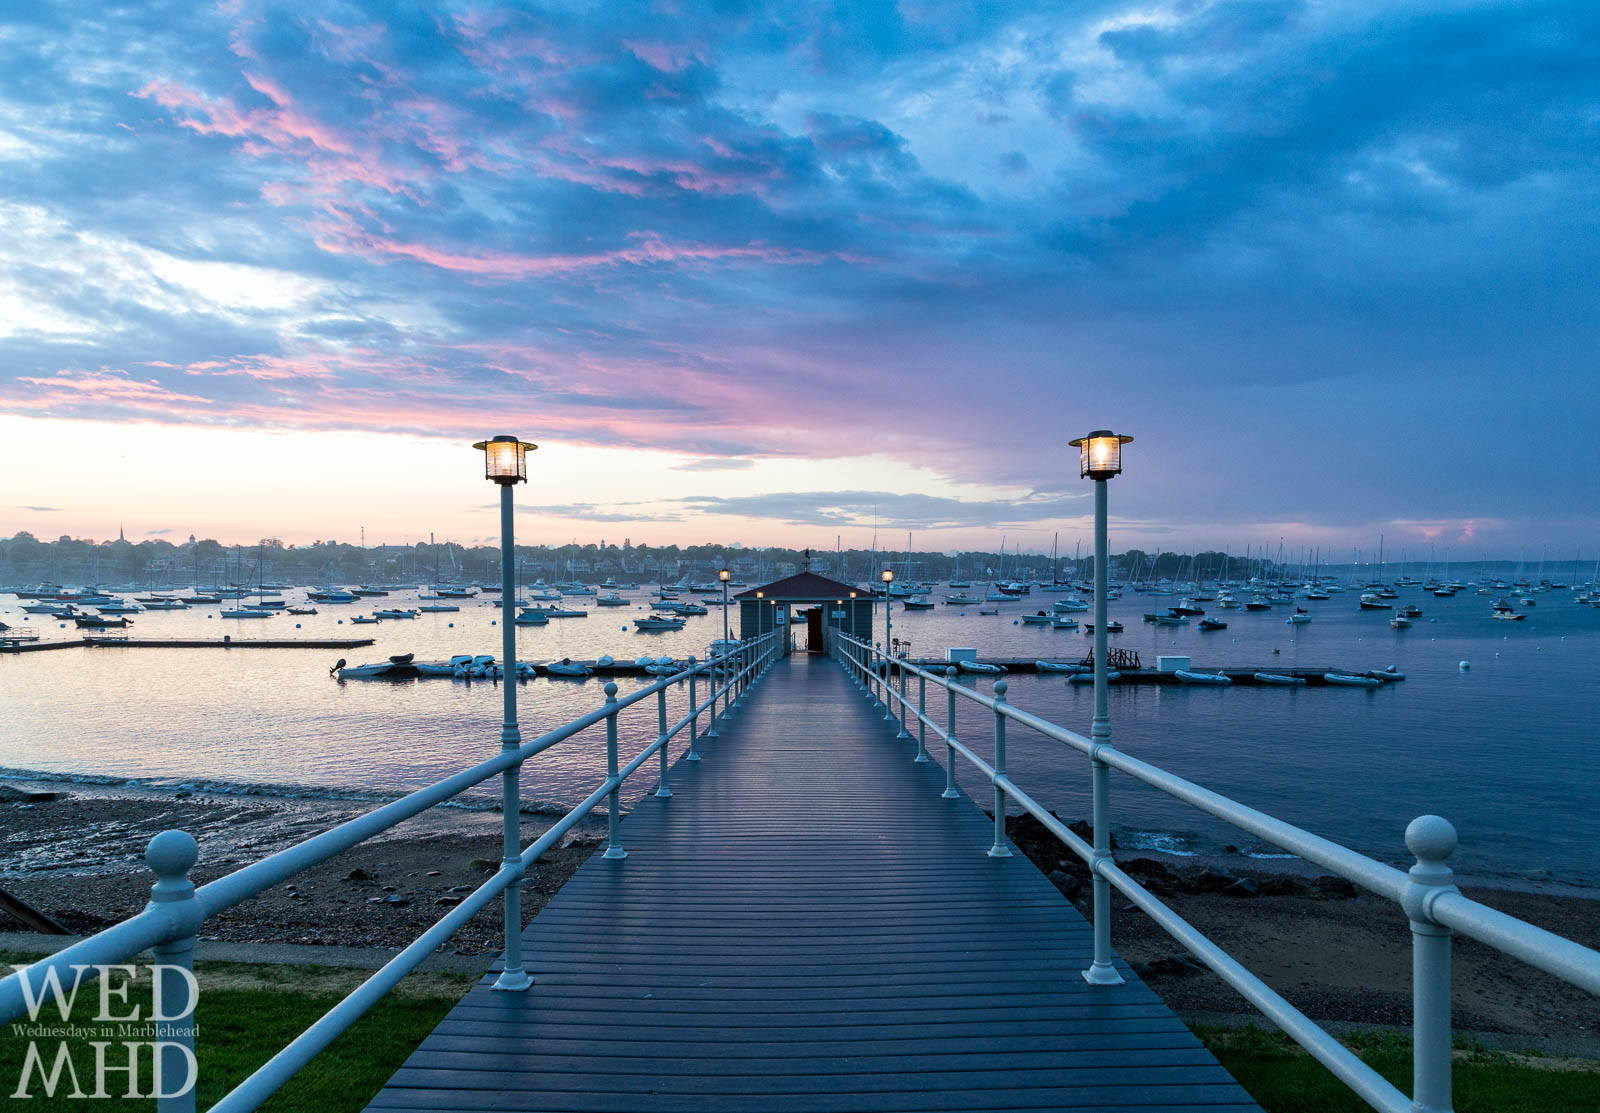 The beautiful pier of the Eastern Yacht Club is seen at sunset with purple clouds in the distance